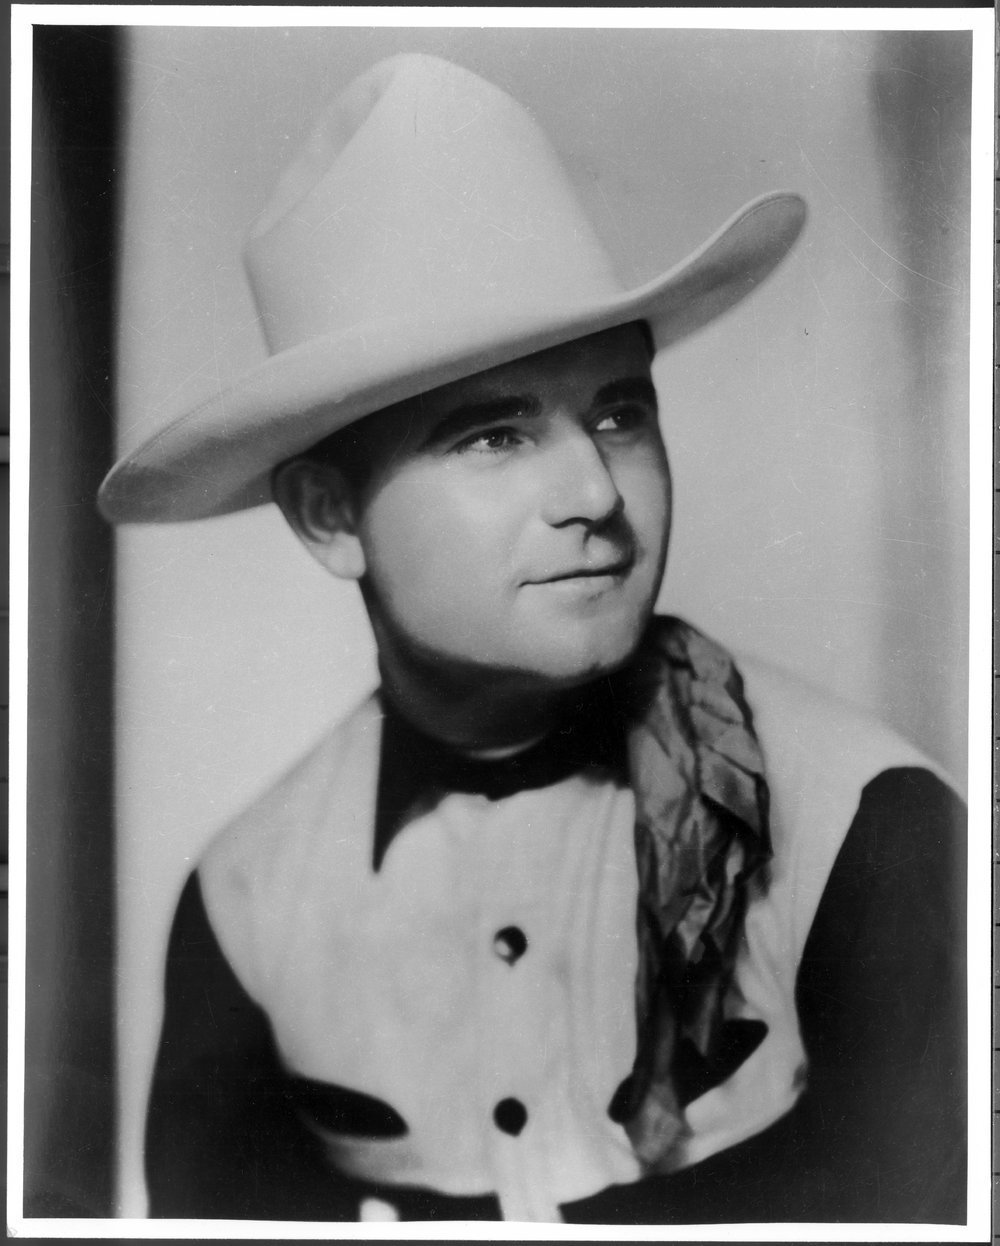 Reb Russell photo collection - Reb Russell, about 1933.  Photo #4